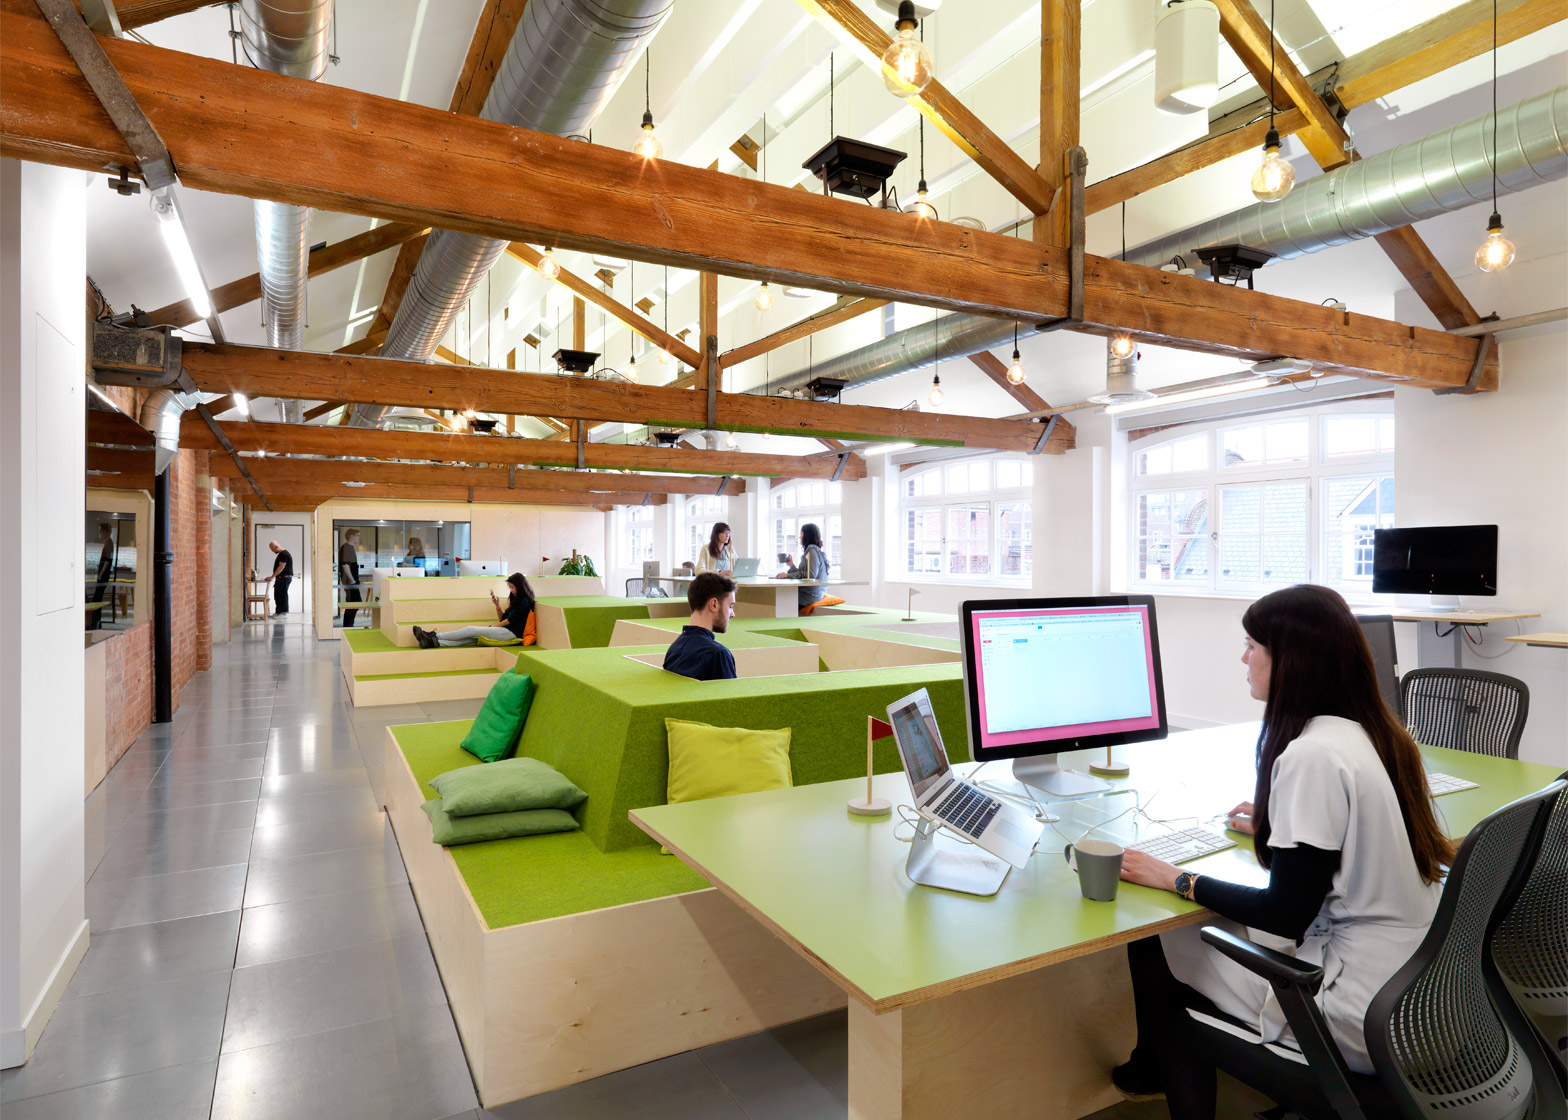 Open plan office design is preventing workers from for New office layout design